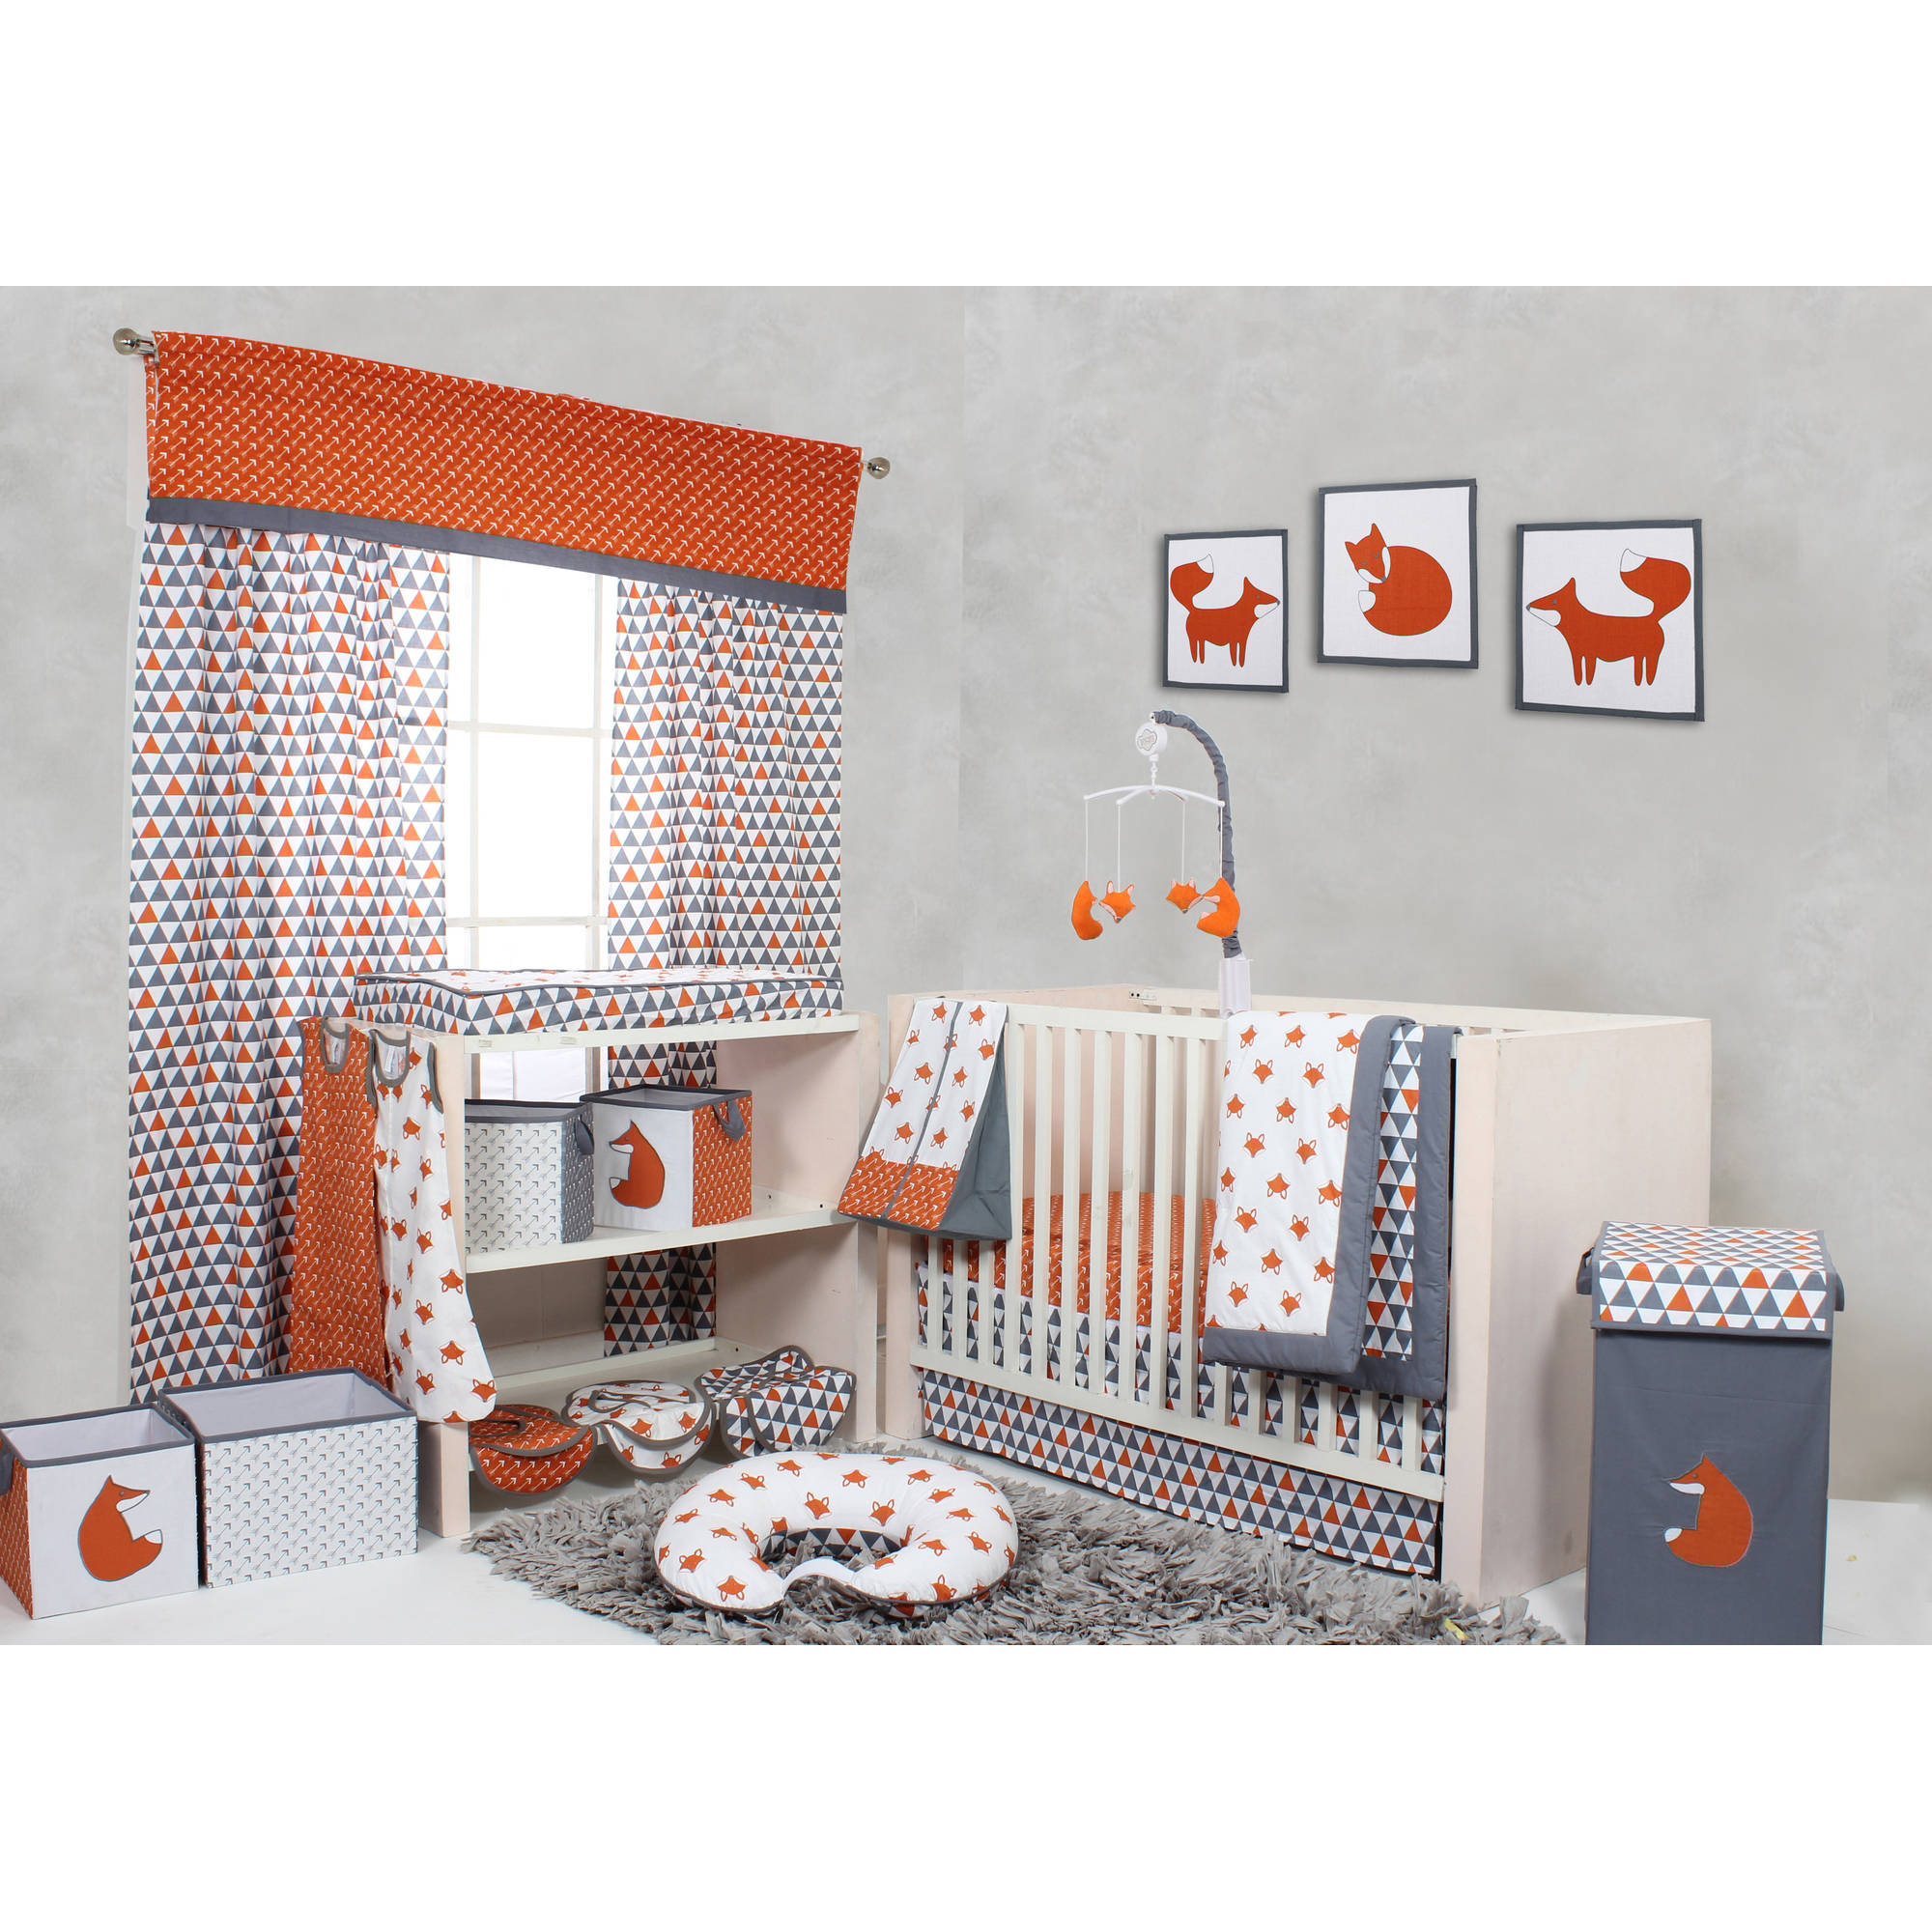 Bacati Playful Foxs Orange/Gray Nursery in a Bag 10-Piece Crib Set without Bumper Pad